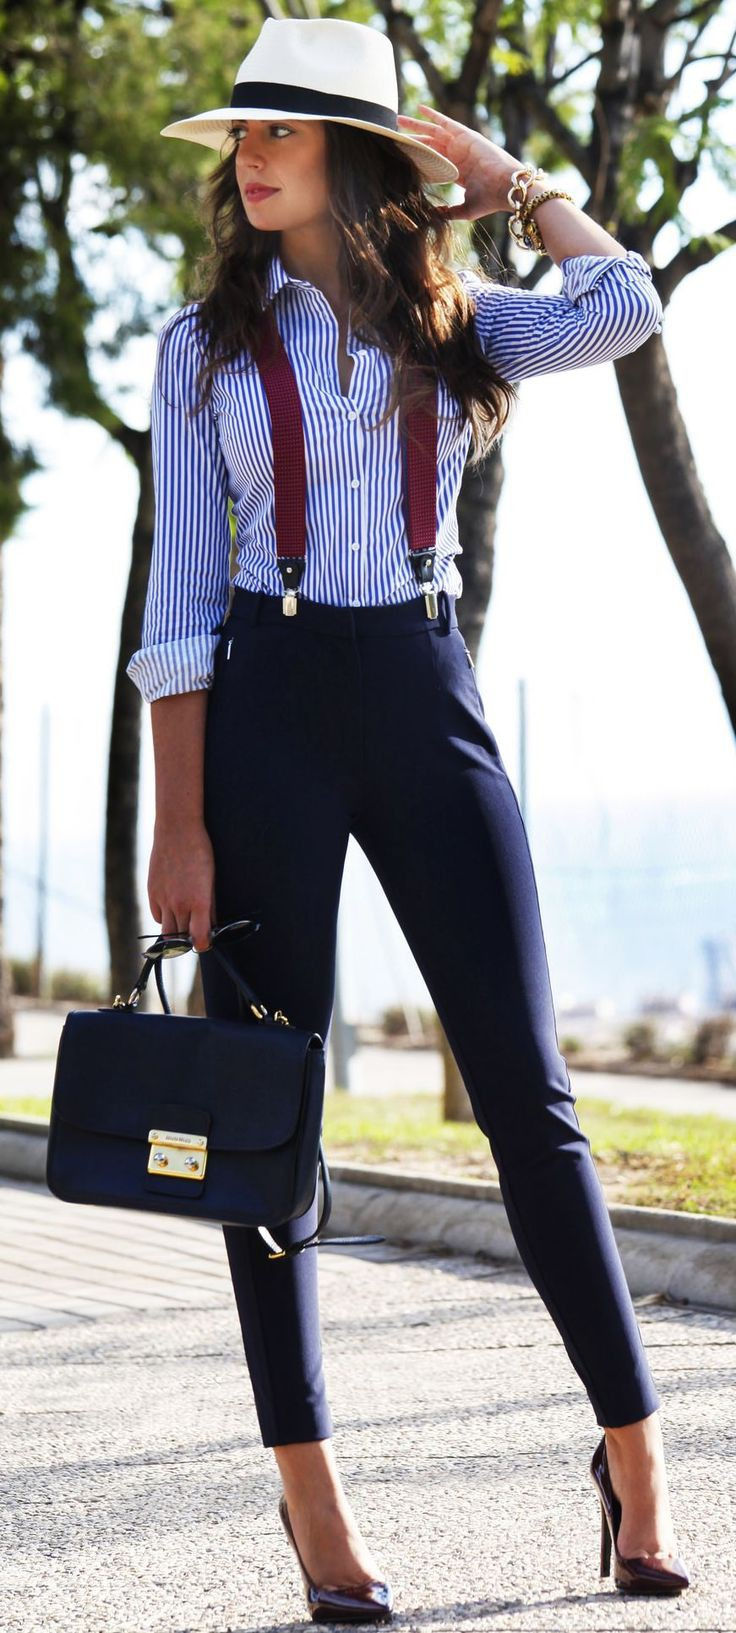 Women's Suspenders Outfit Ideas